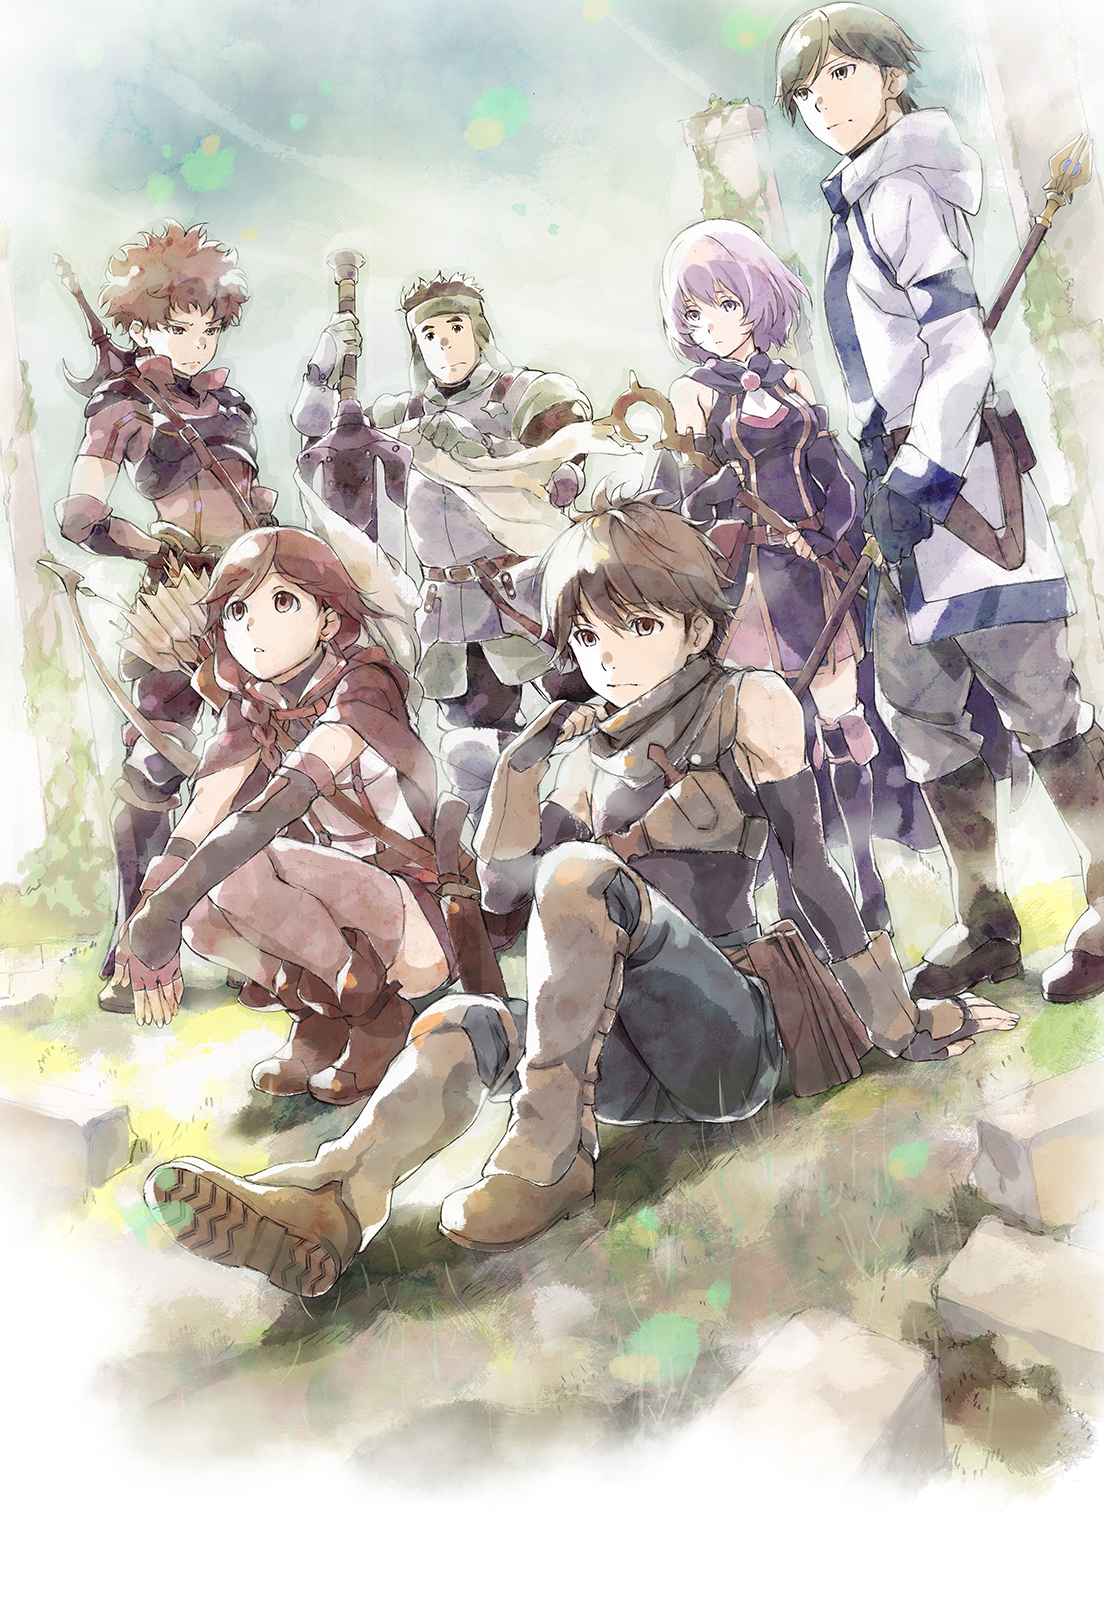 15 [Similar Anime] Like Grimgar: Ashes and Illusions